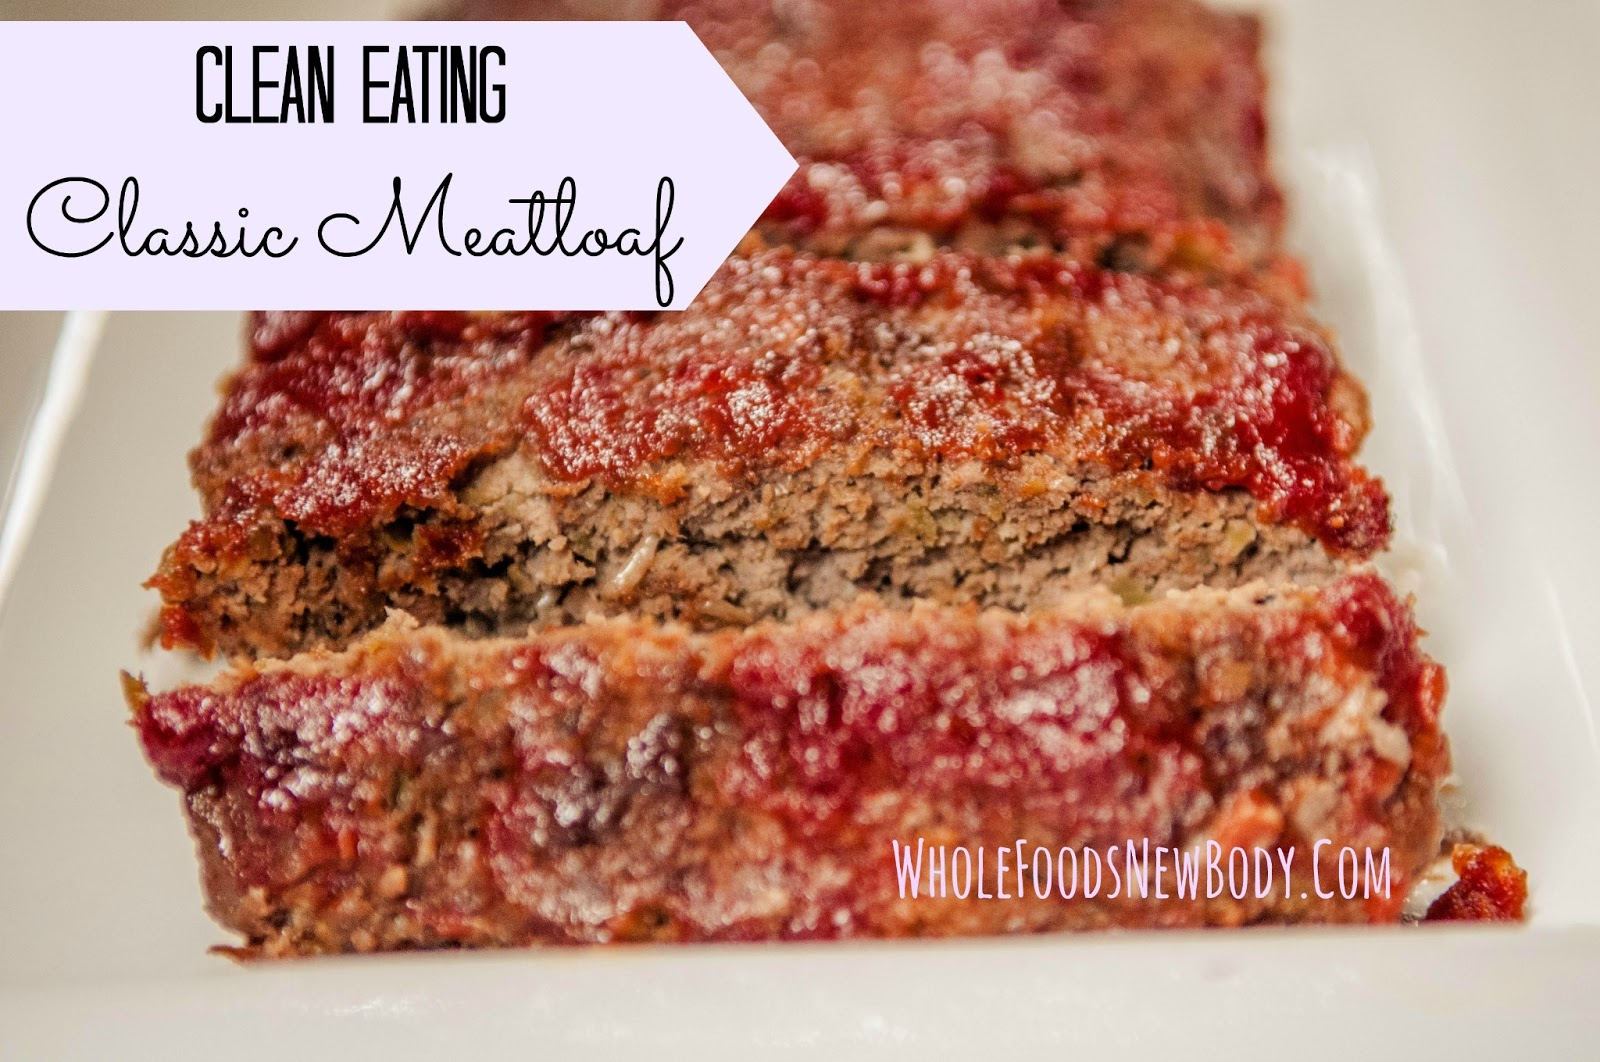 Whole Foods...New Body!: {Clean Eating Classic Meatloaf}